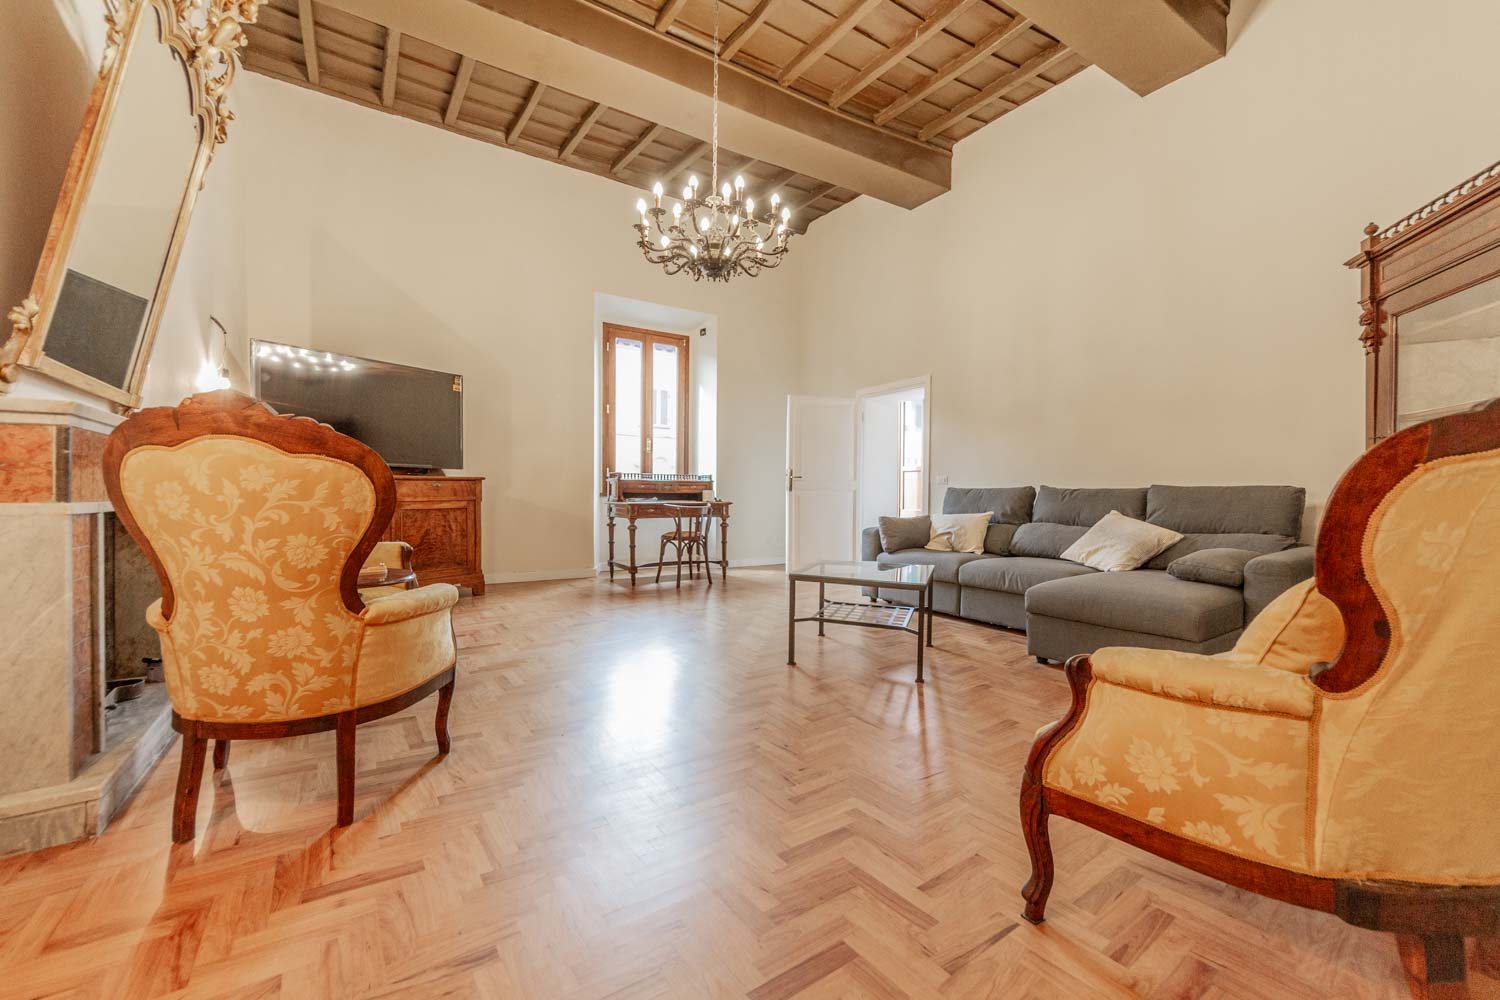 Apartment for sale Rome North Campagnano: 221 sqm Finely Restored in Historic Building a few steps from Rome